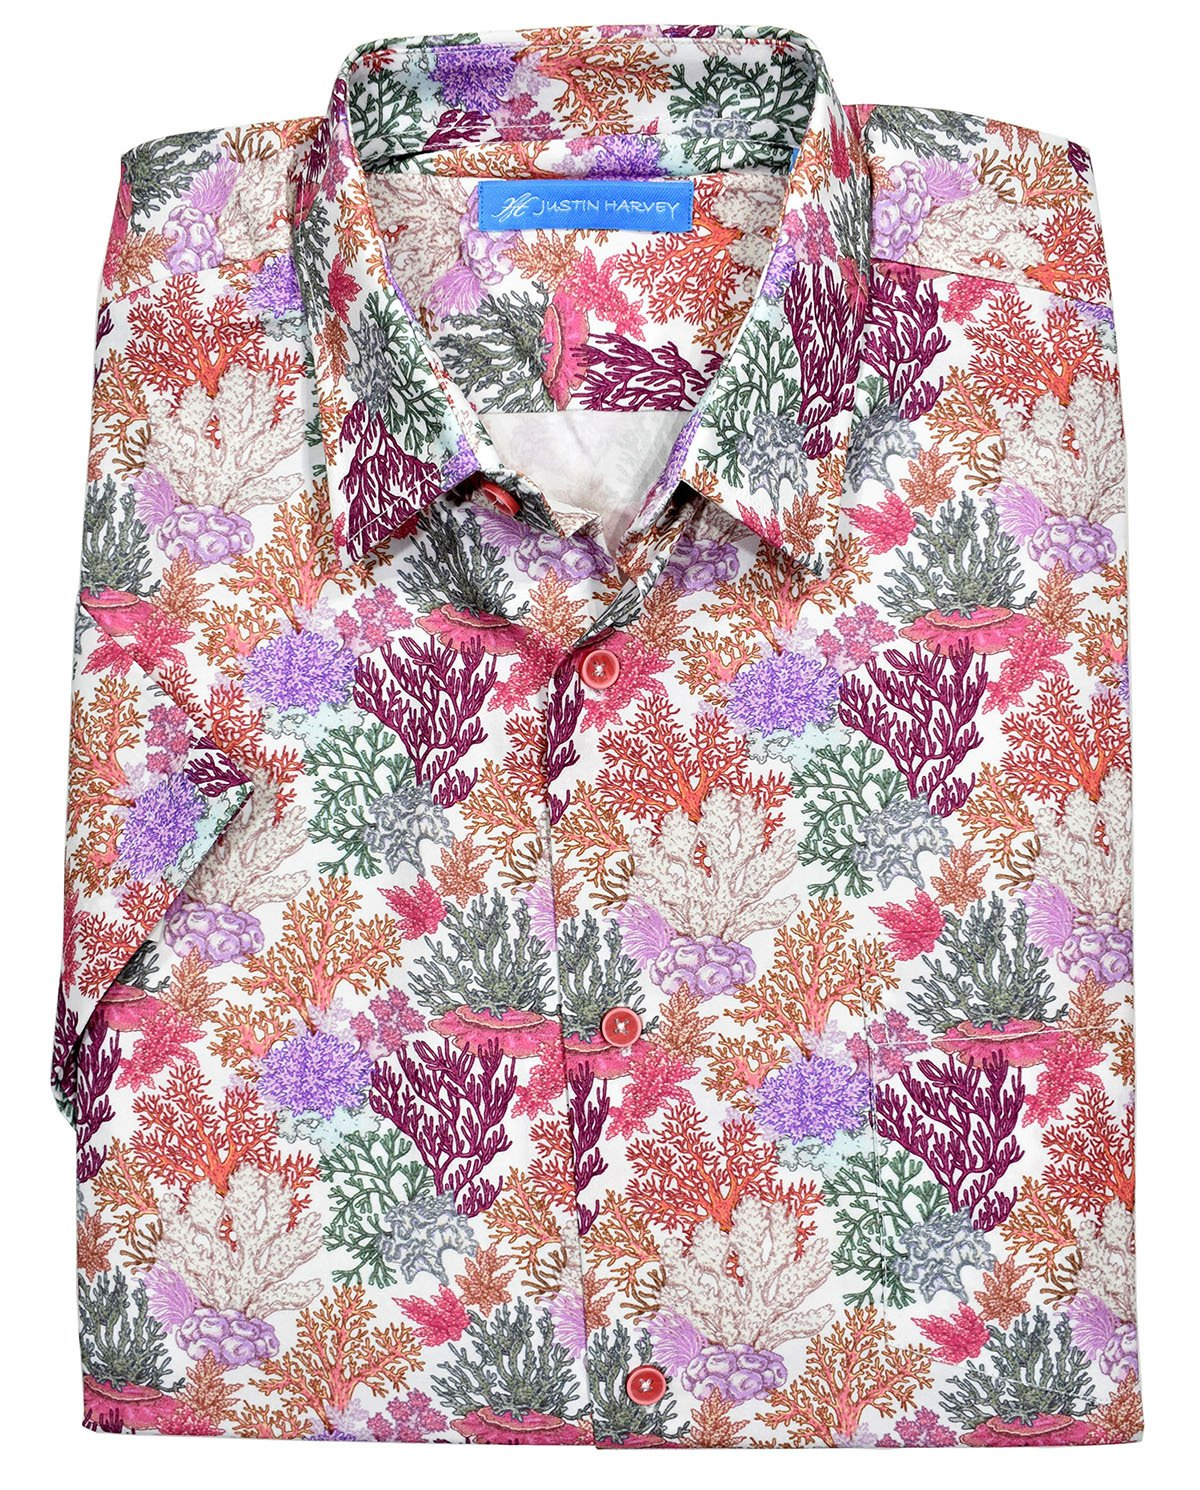 ZW130 Justin Harvey Exclusive Print Pattern Coral Garden - Marcello Sport